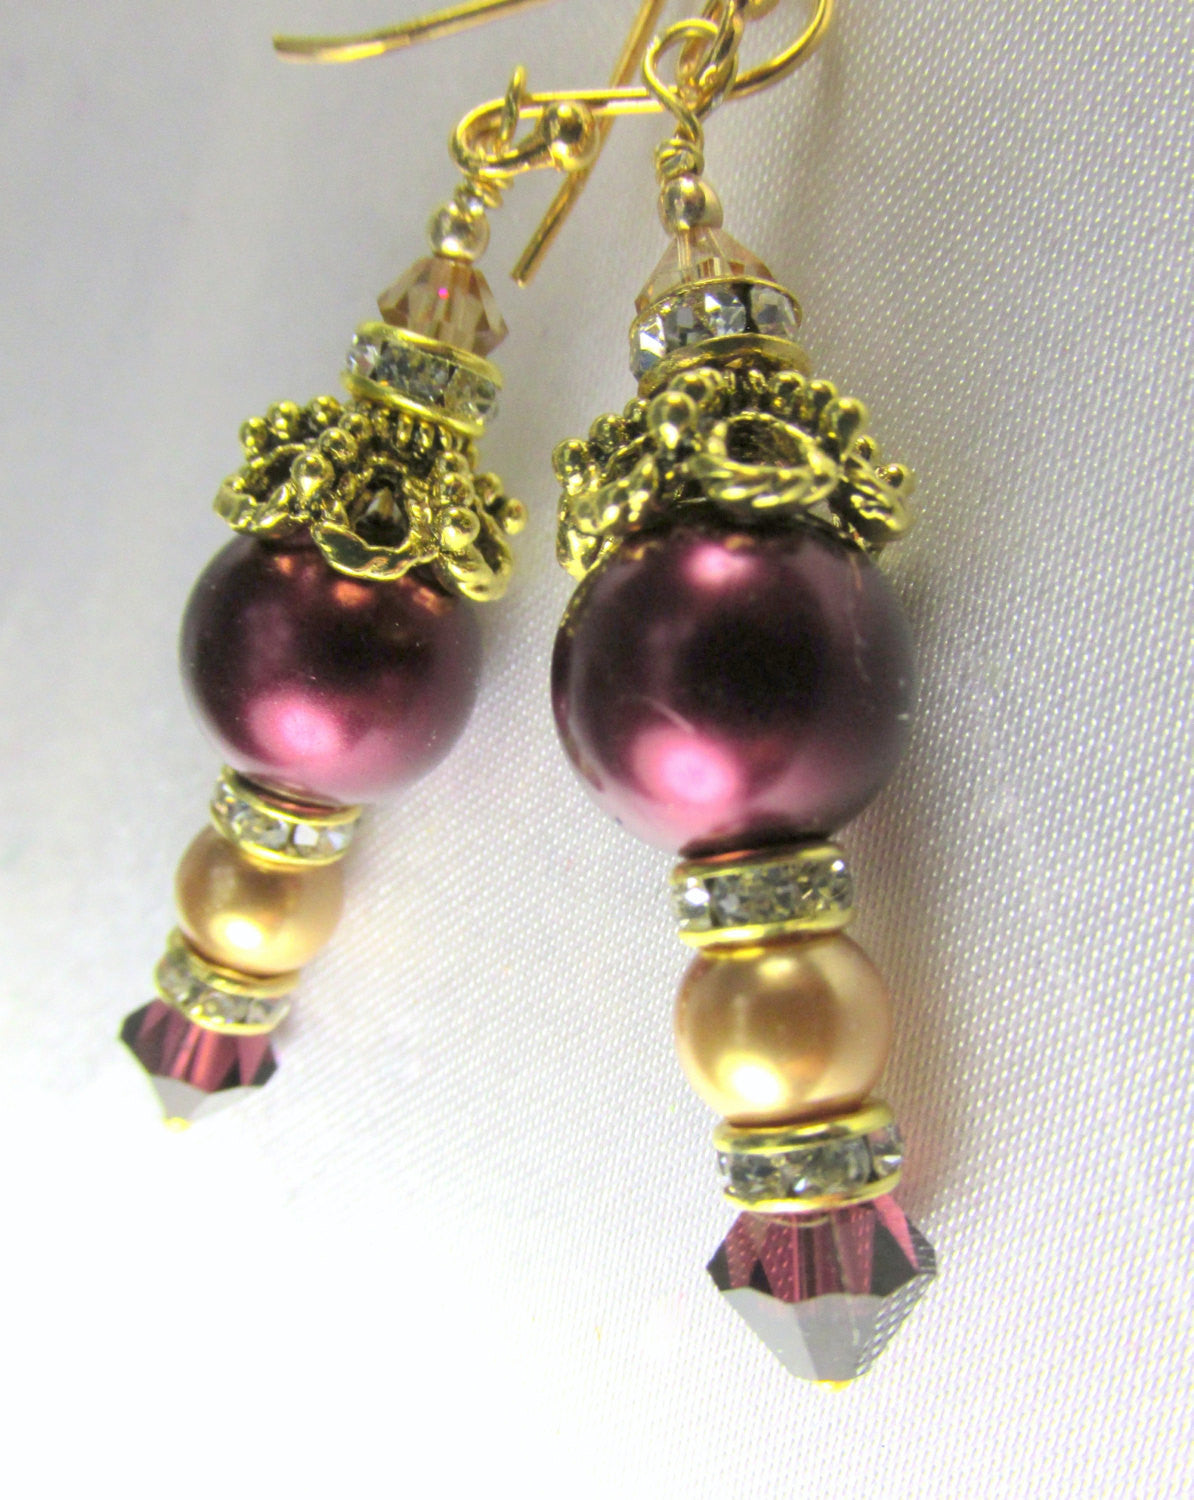 Bridal or Bridemaid Earrings in Blackberry Burgundy and Light Gold Swarovski Pearls, Crystals - Odyssey Creations